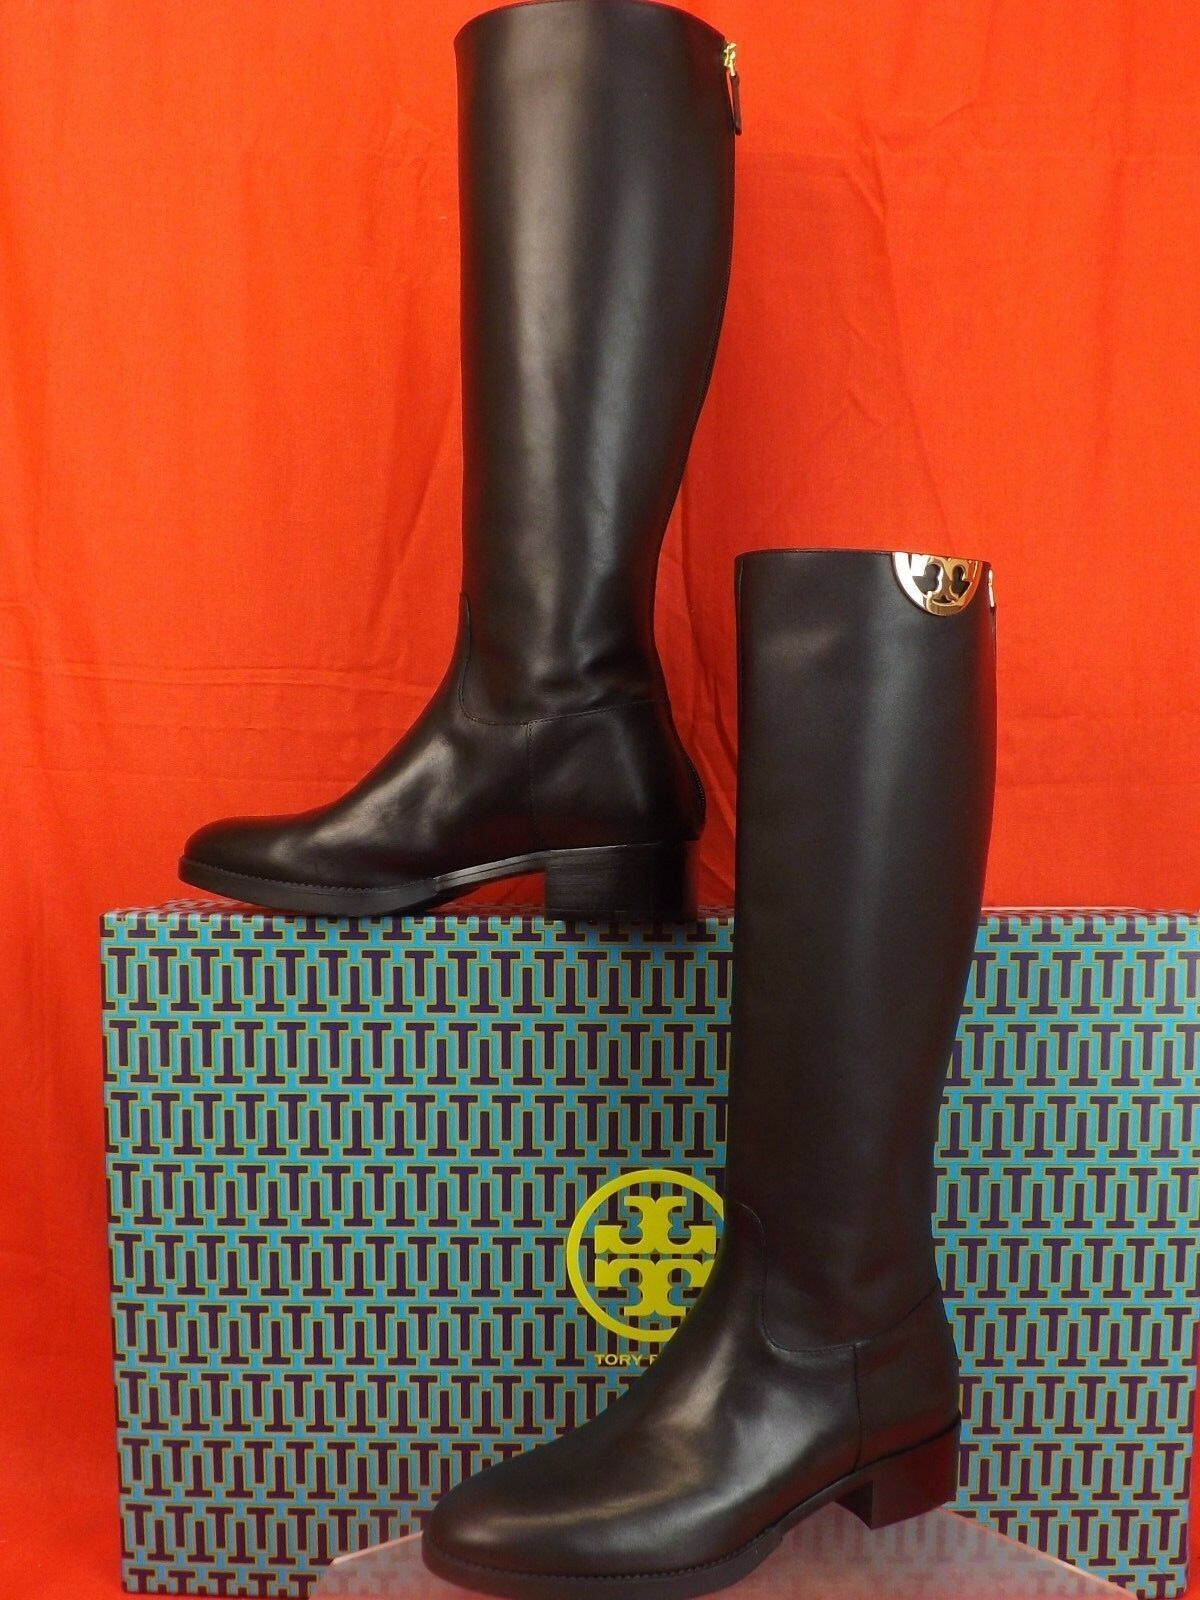 d4e9635a37e9 NIB TORY BURCH SIDNEY SIDNEY SIDNEY BLACK LEATHER GOLD HALF REVA TALL RIDING  BOOTS 8.5  495 7788d9